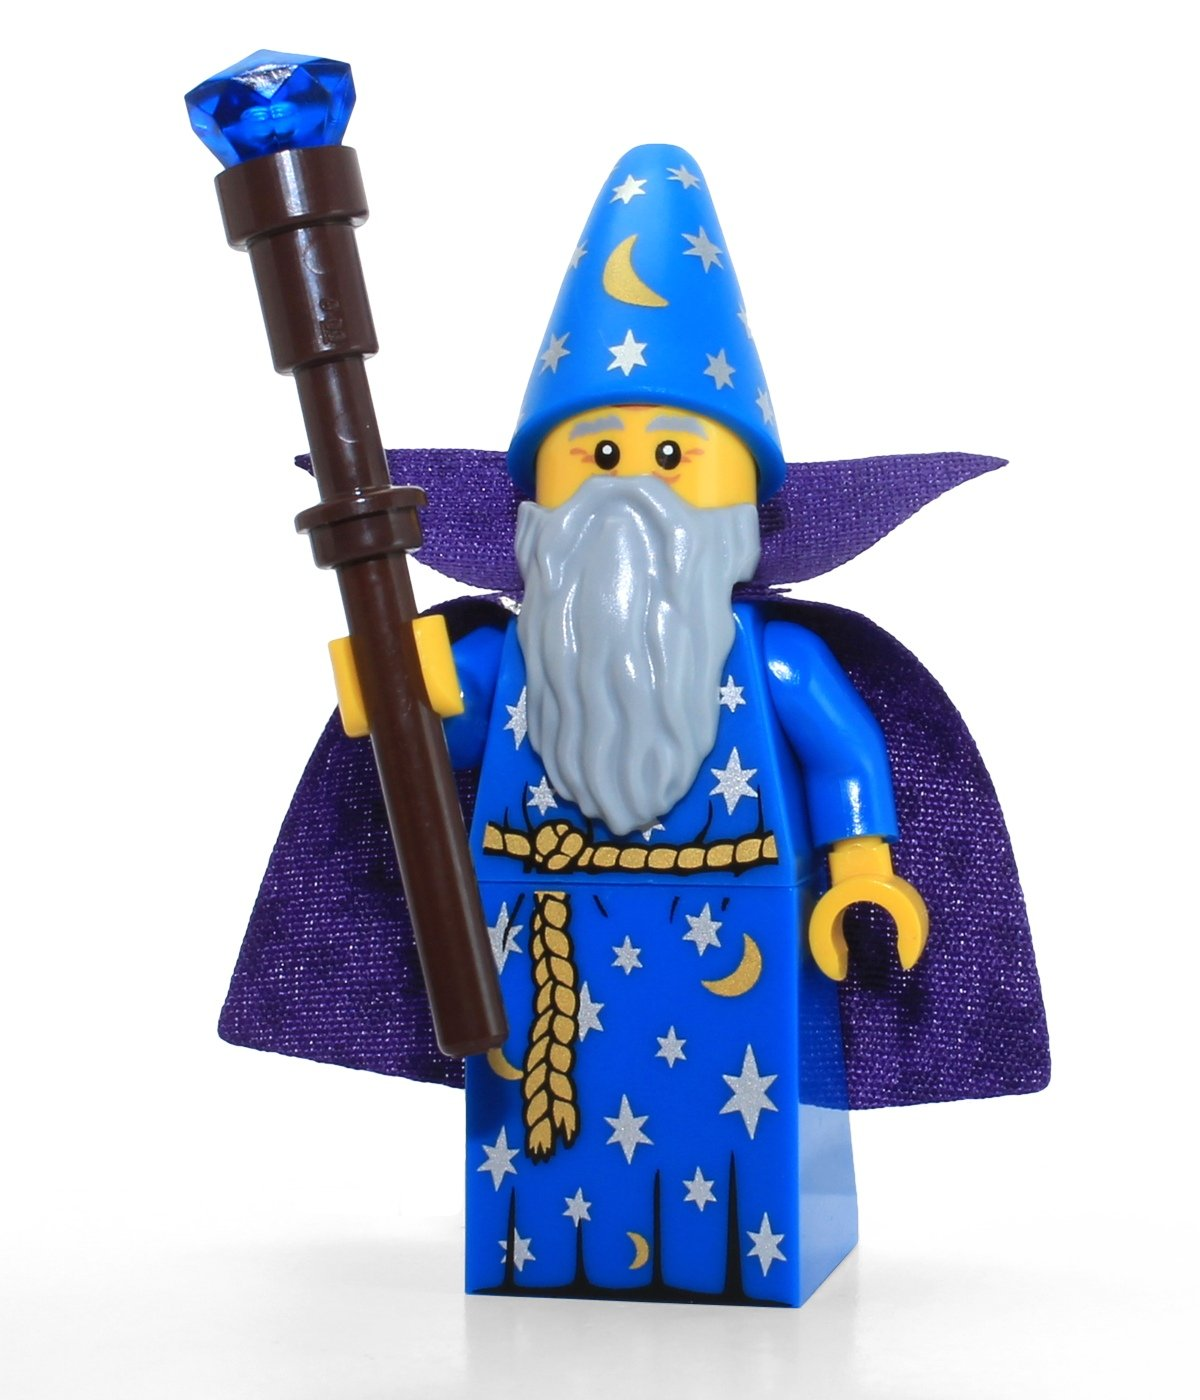 Amazon.com: LEGO Series 12 Collectible Minifigure 71007 - Wizard ...